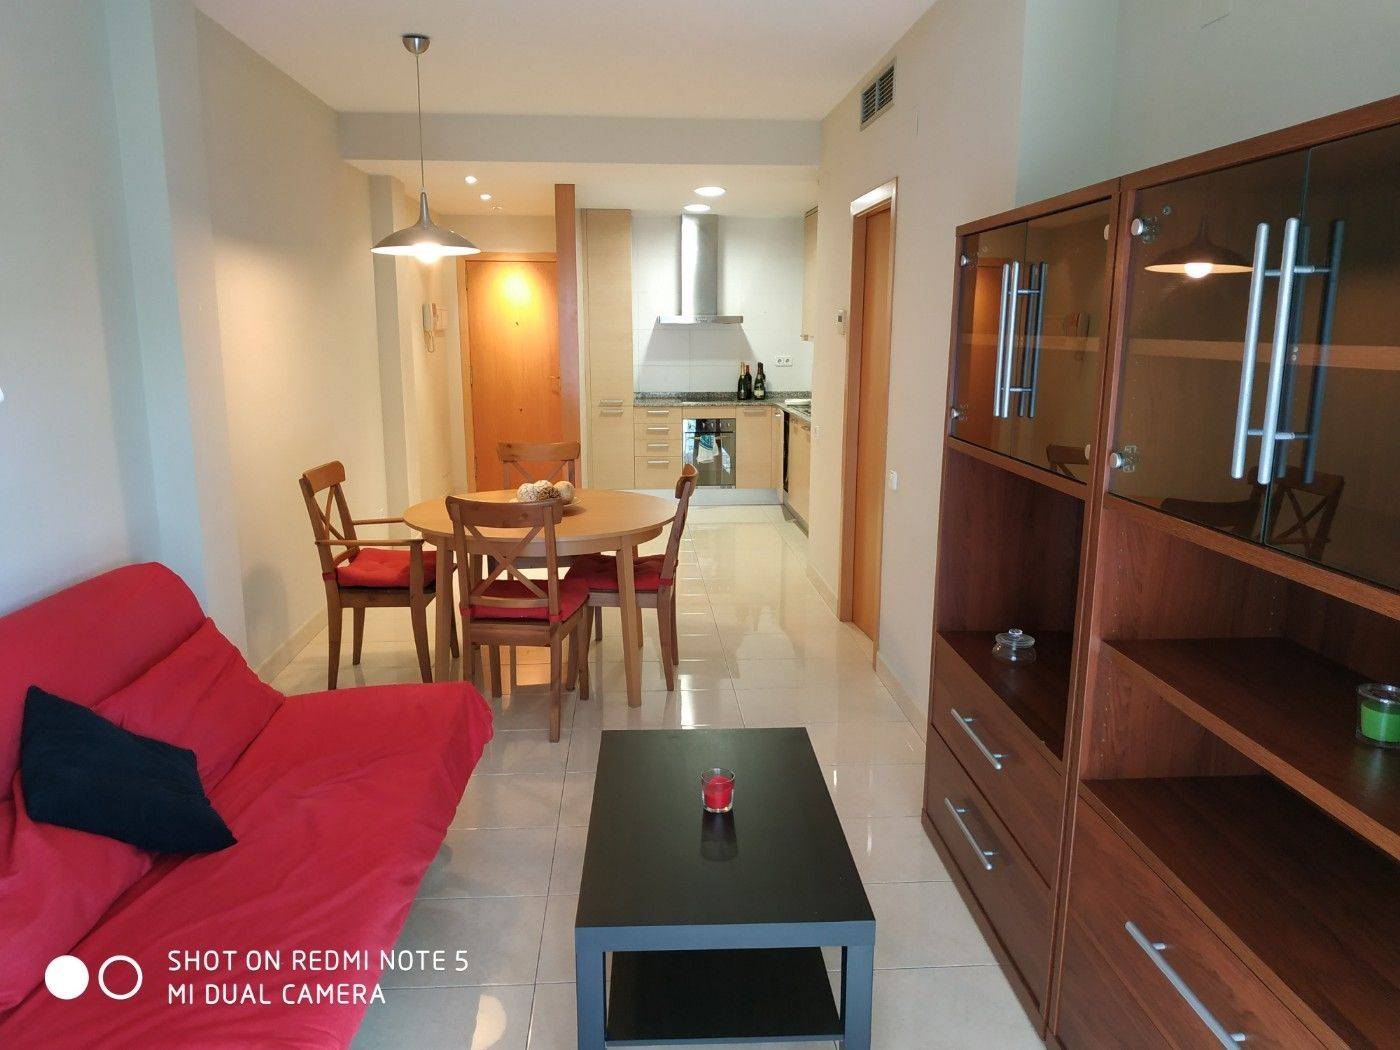 Rent Apartment  Carrer arizala. Piso apartamento les corts nou